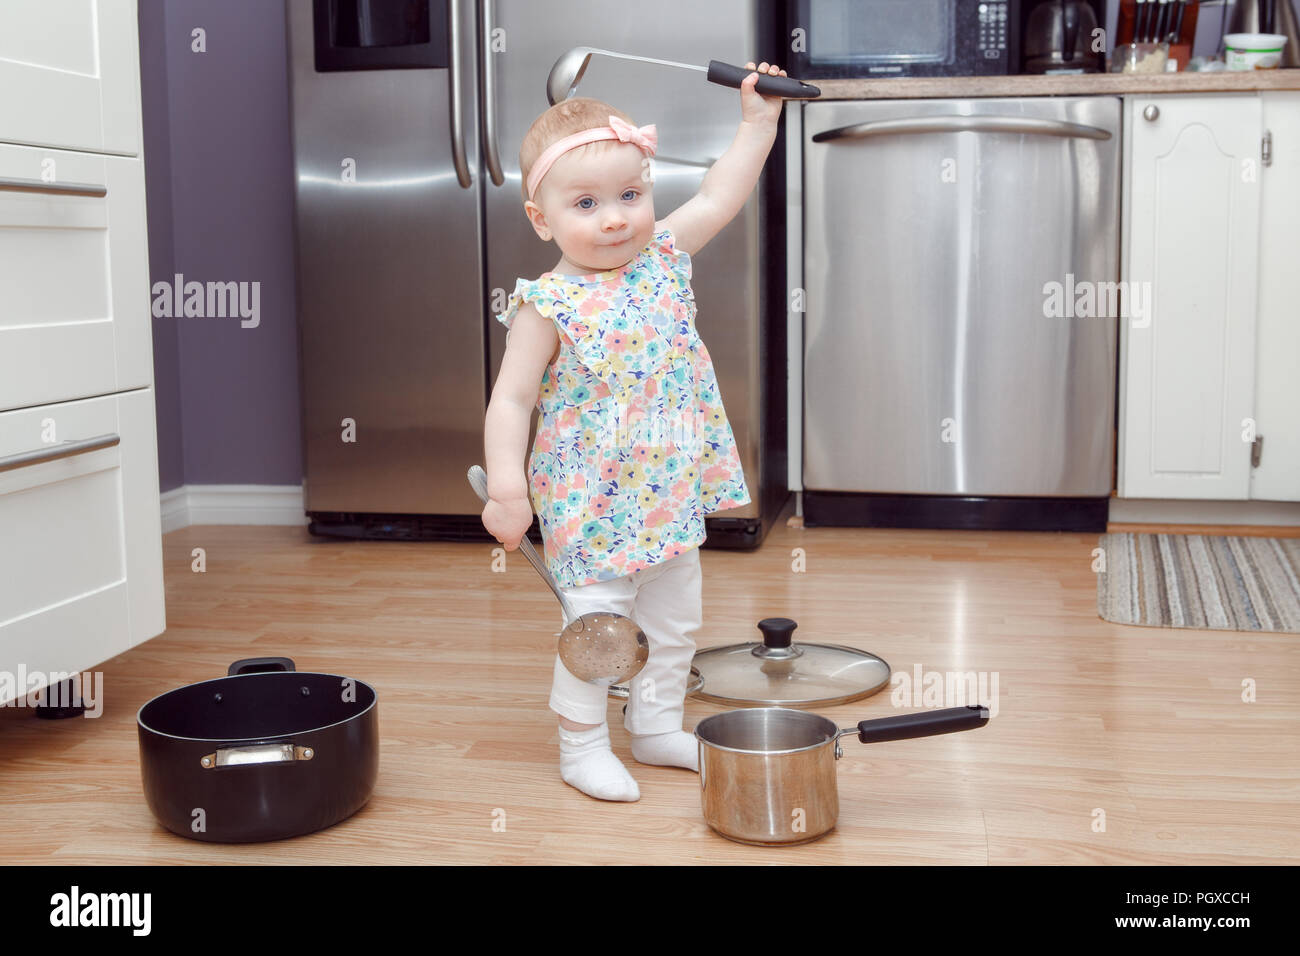 Portrait of cute adorable funny little Caucasian blonde baby girl playing in kitchen with utensils, pot and ladle, child with funny face emotional exp - Stock Image